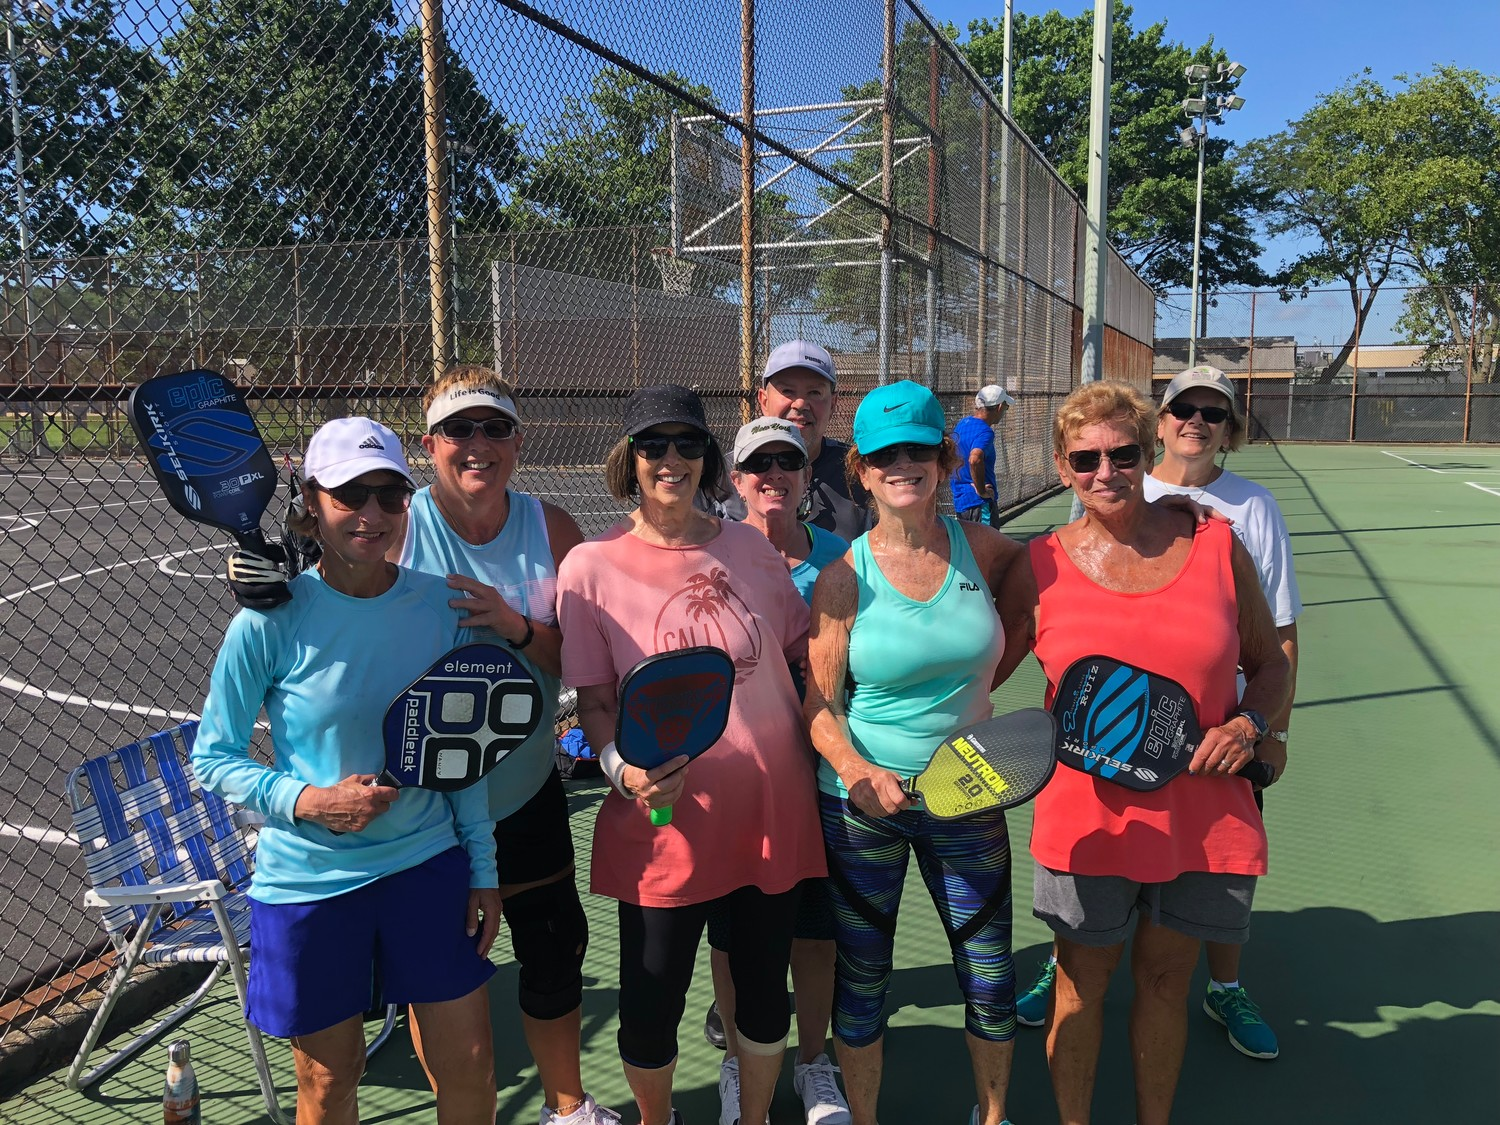 Pickleball brings friends together on the court every morning in Merrick.